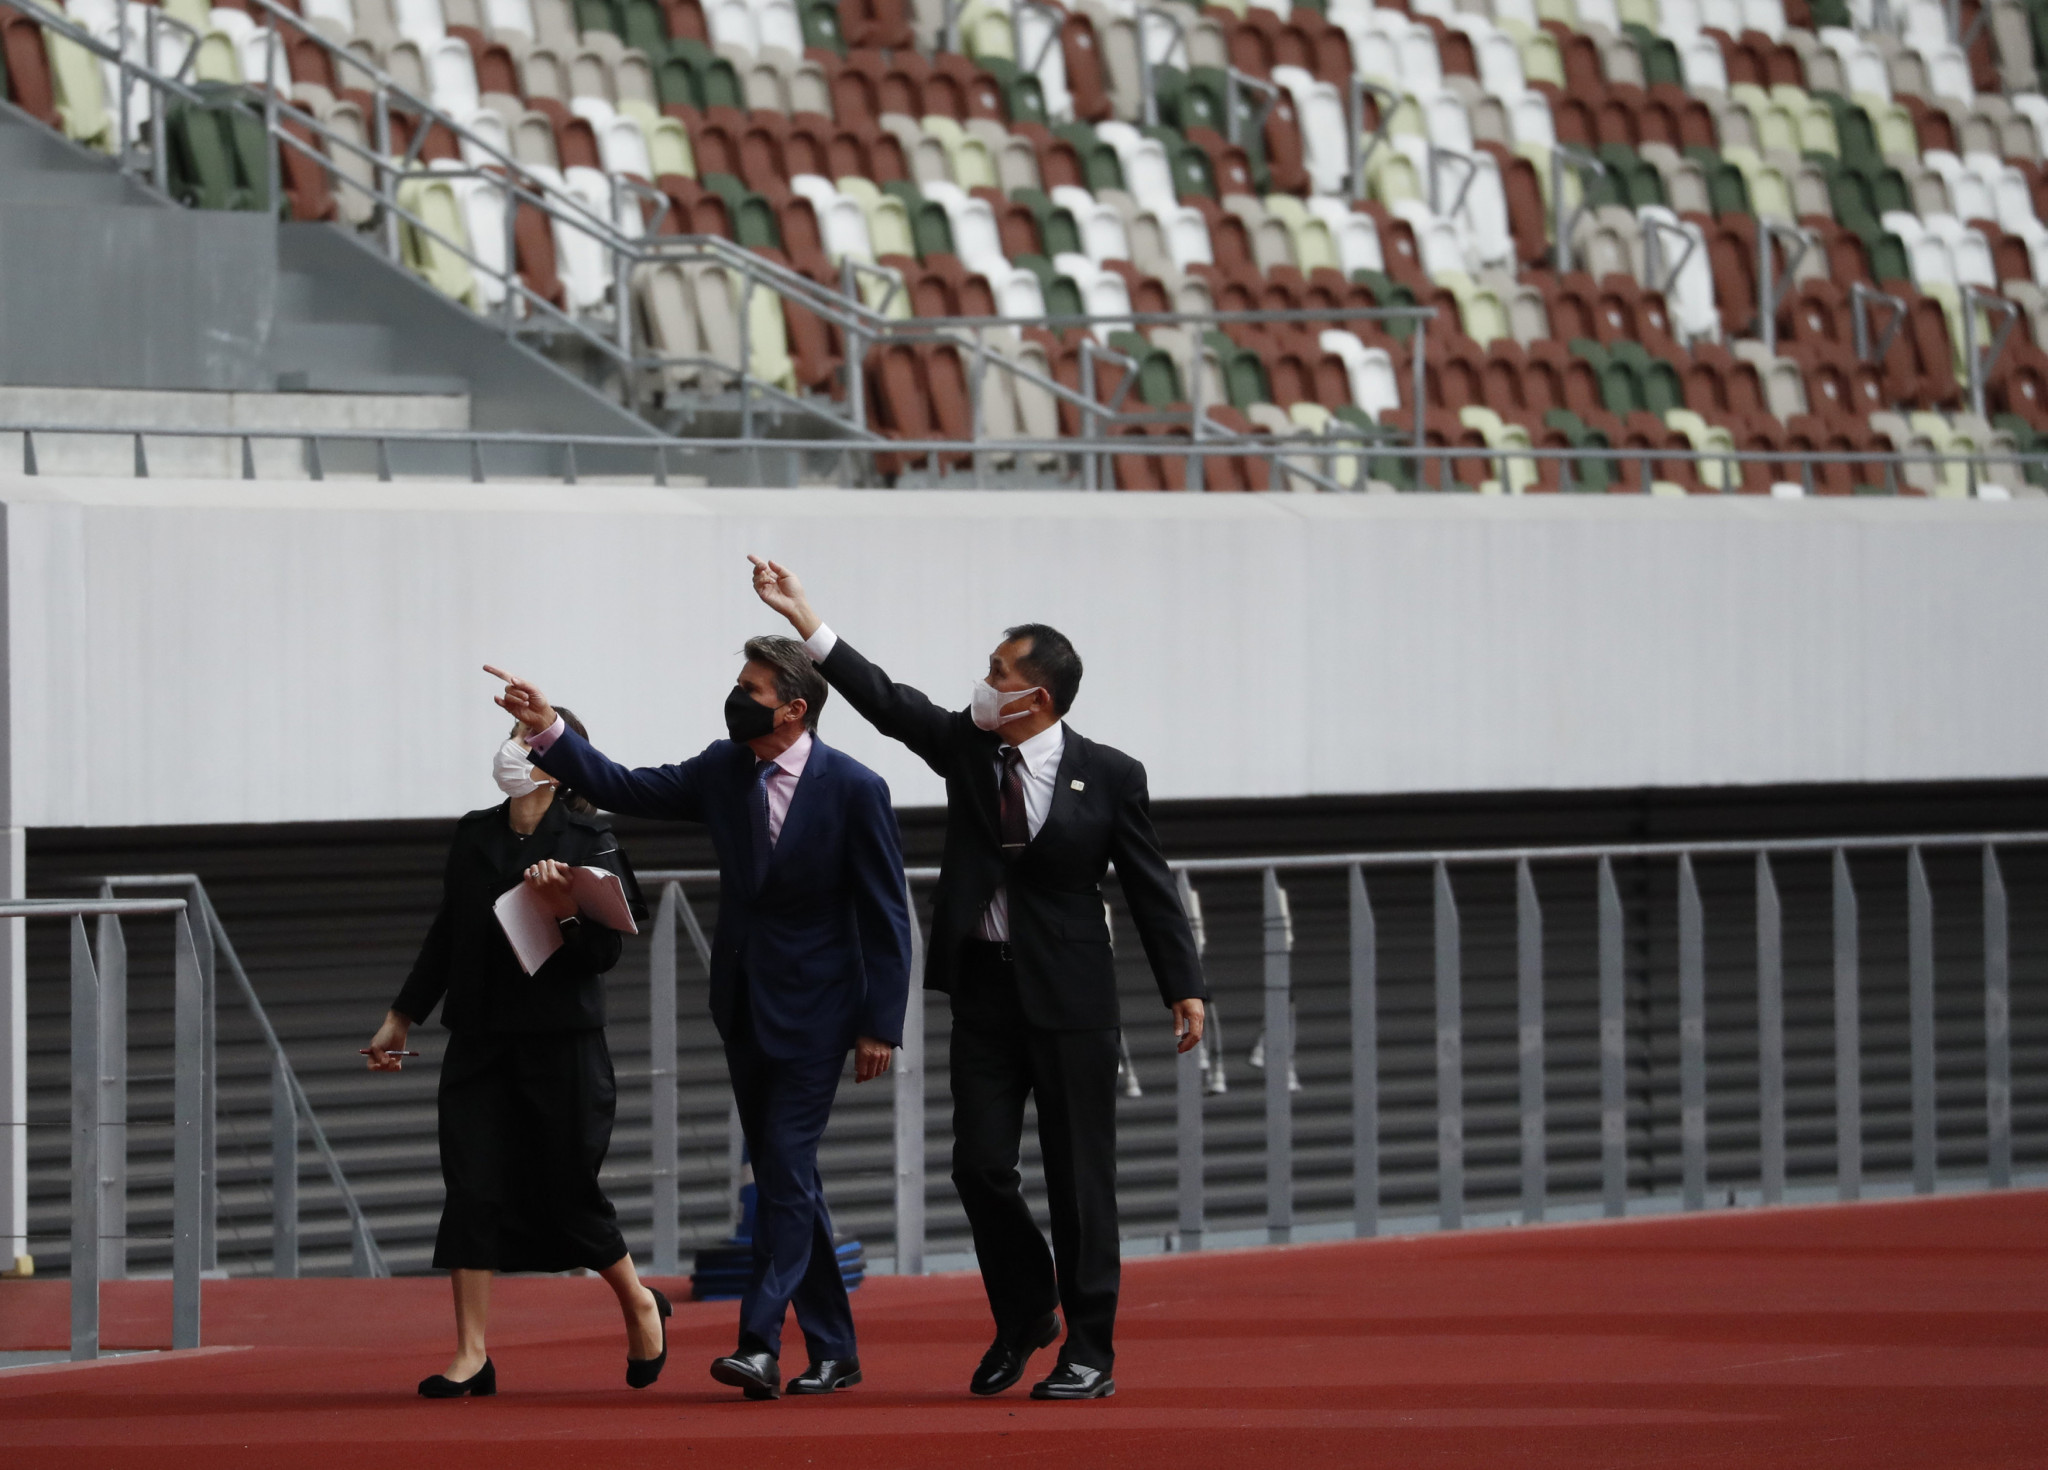 World Athletics President Sebastian Coe, centre, visited the Olympic Stadium in Tokyo in October ©Getty Images